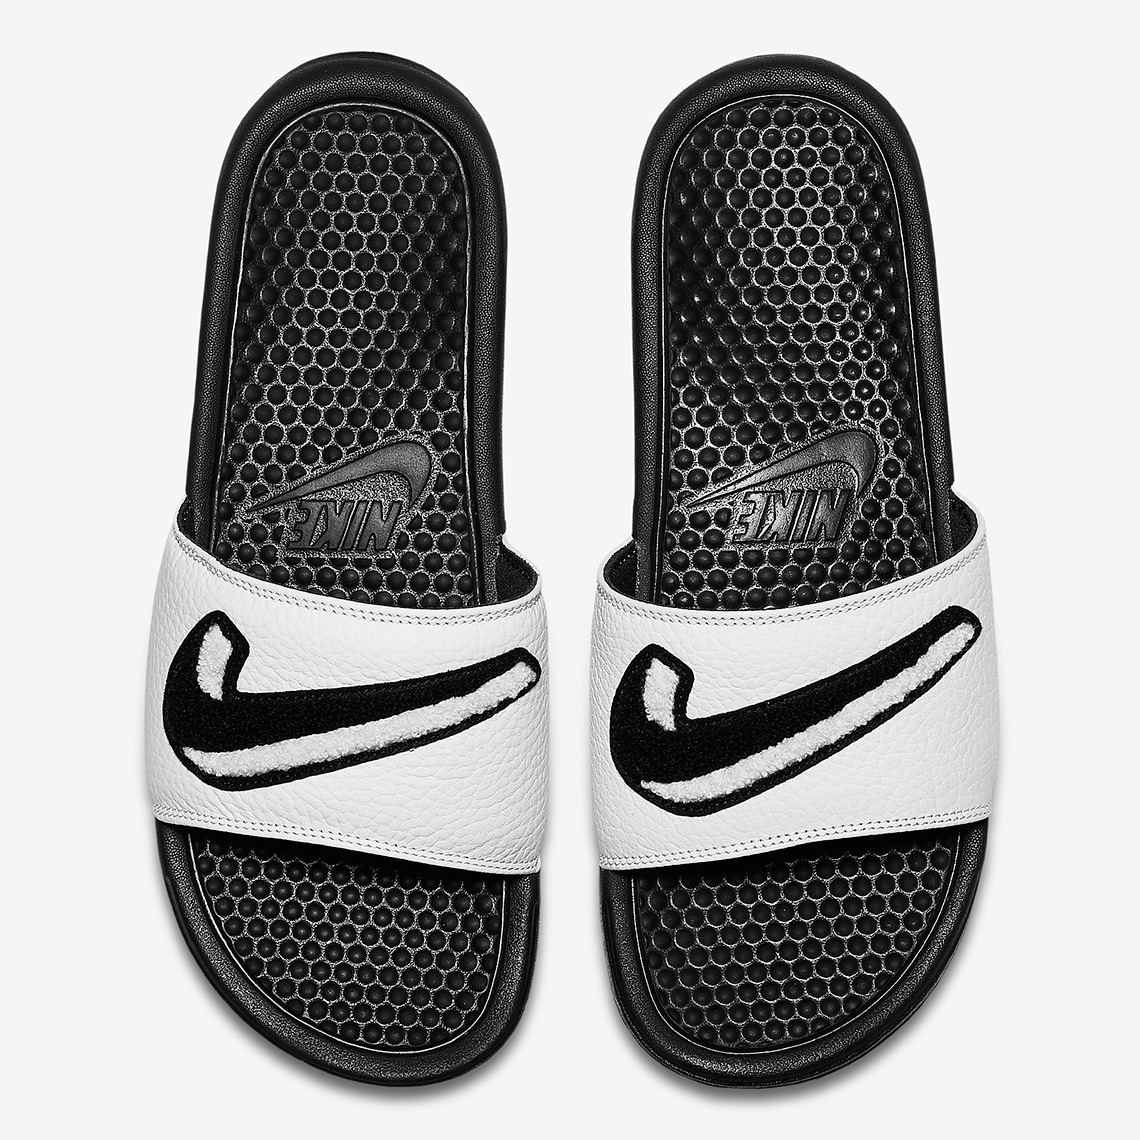 new product ab435 f14d3 Nike Benassi JDI Available Now on Nike.com  45. Color  Black Summit White  Style Code  AO2805-001